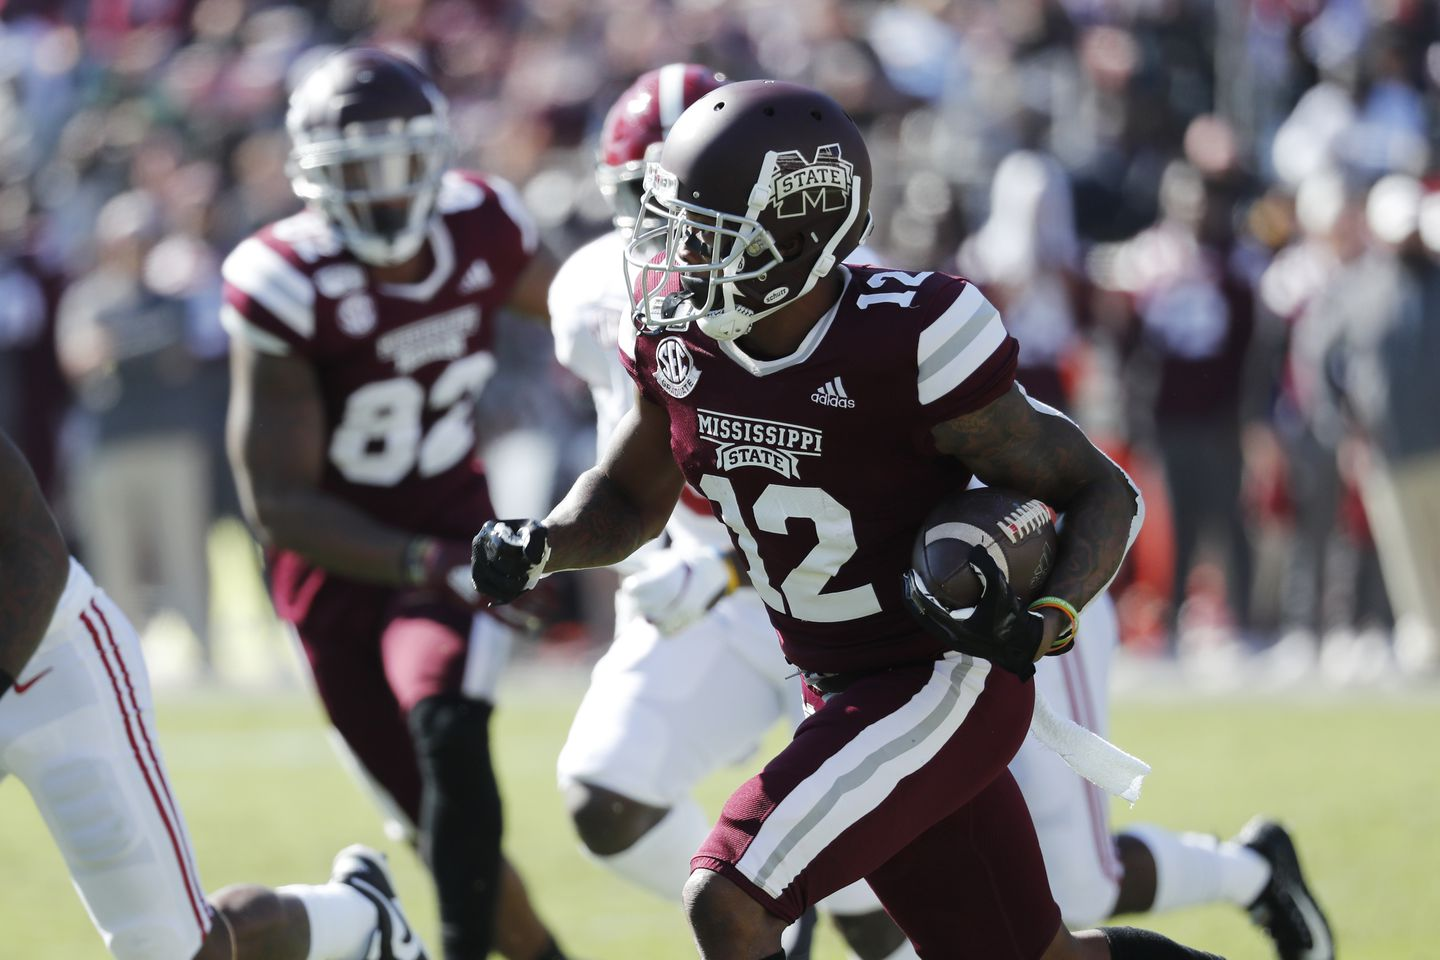 Patriots Add Undrafted Wide Receiver Isaiah Zuber The Boston Globe